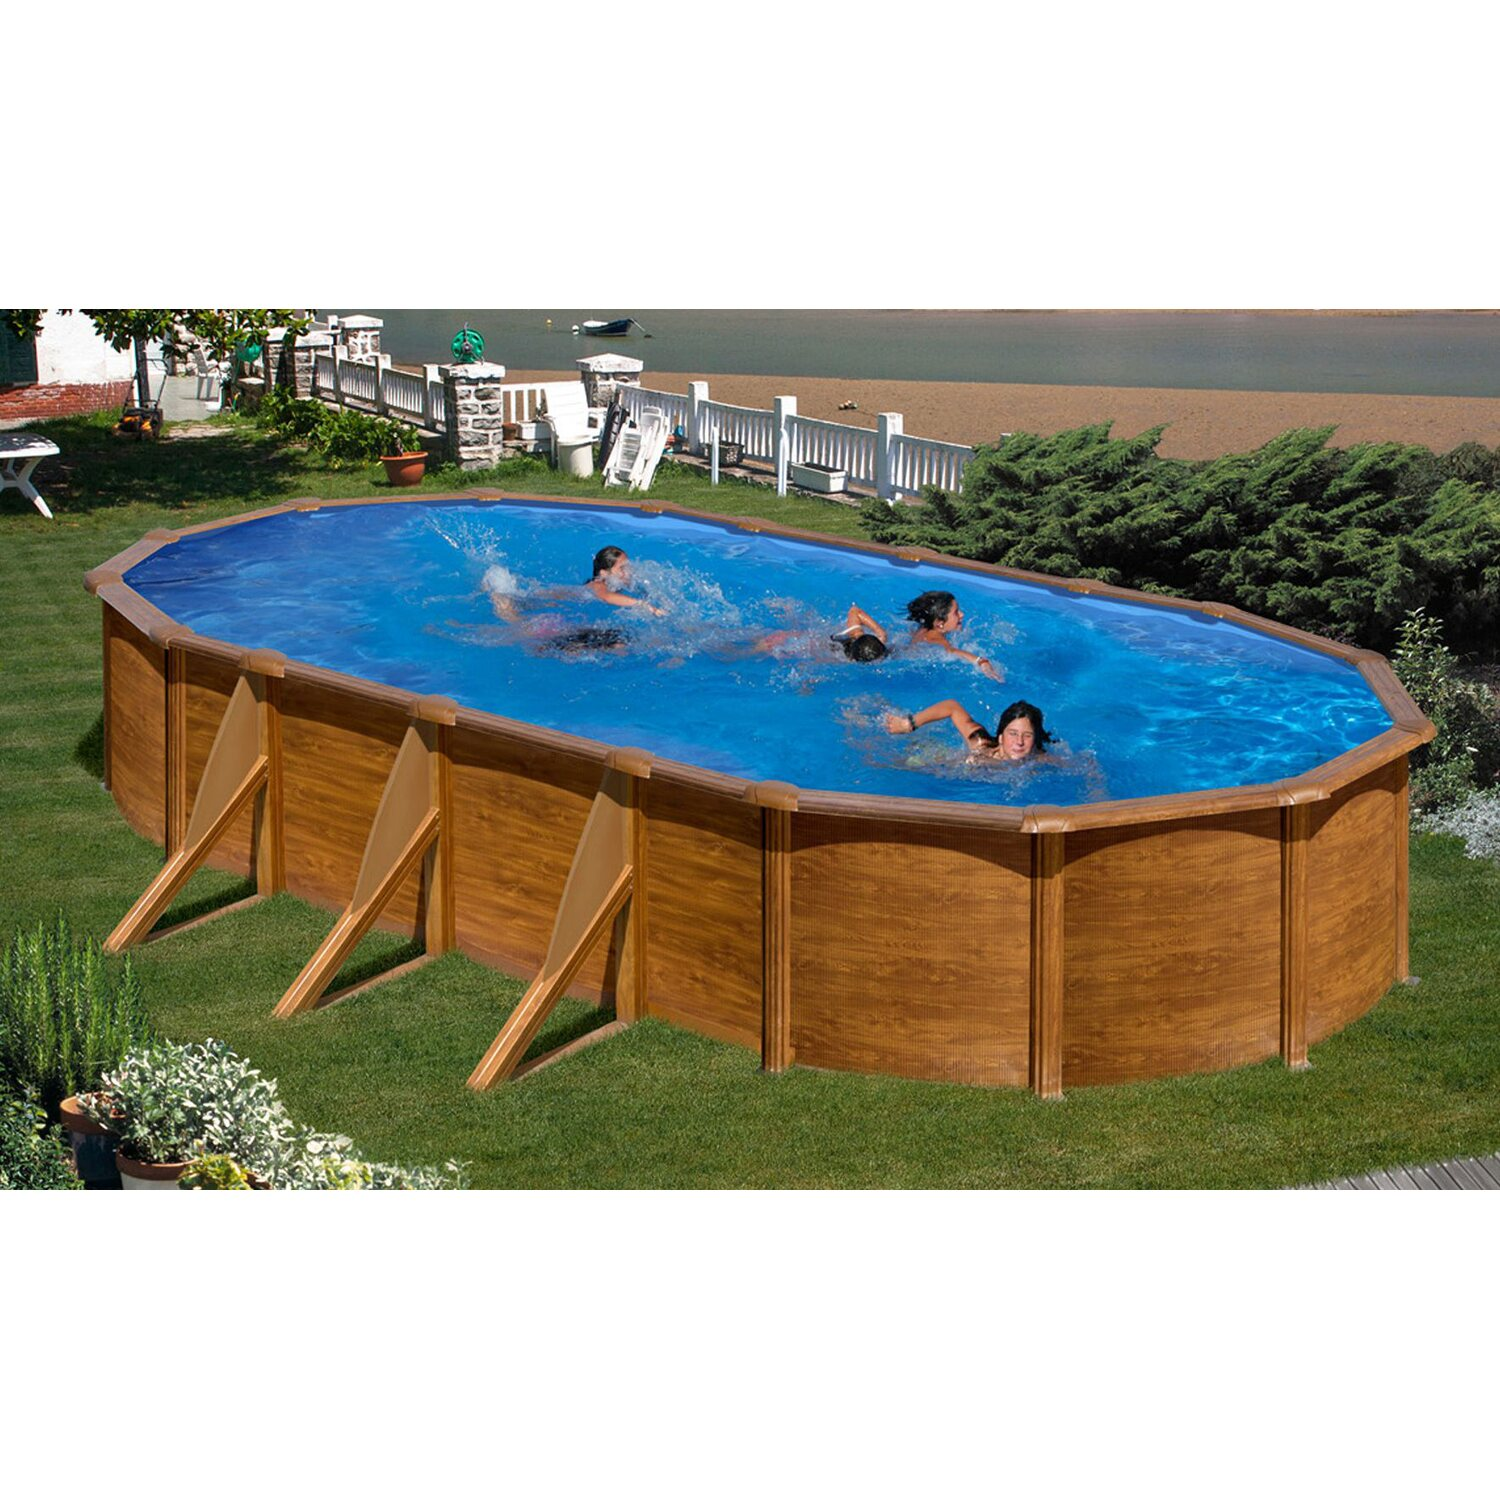 Gartenpool eckig swalif for Abdeckplane pool obi